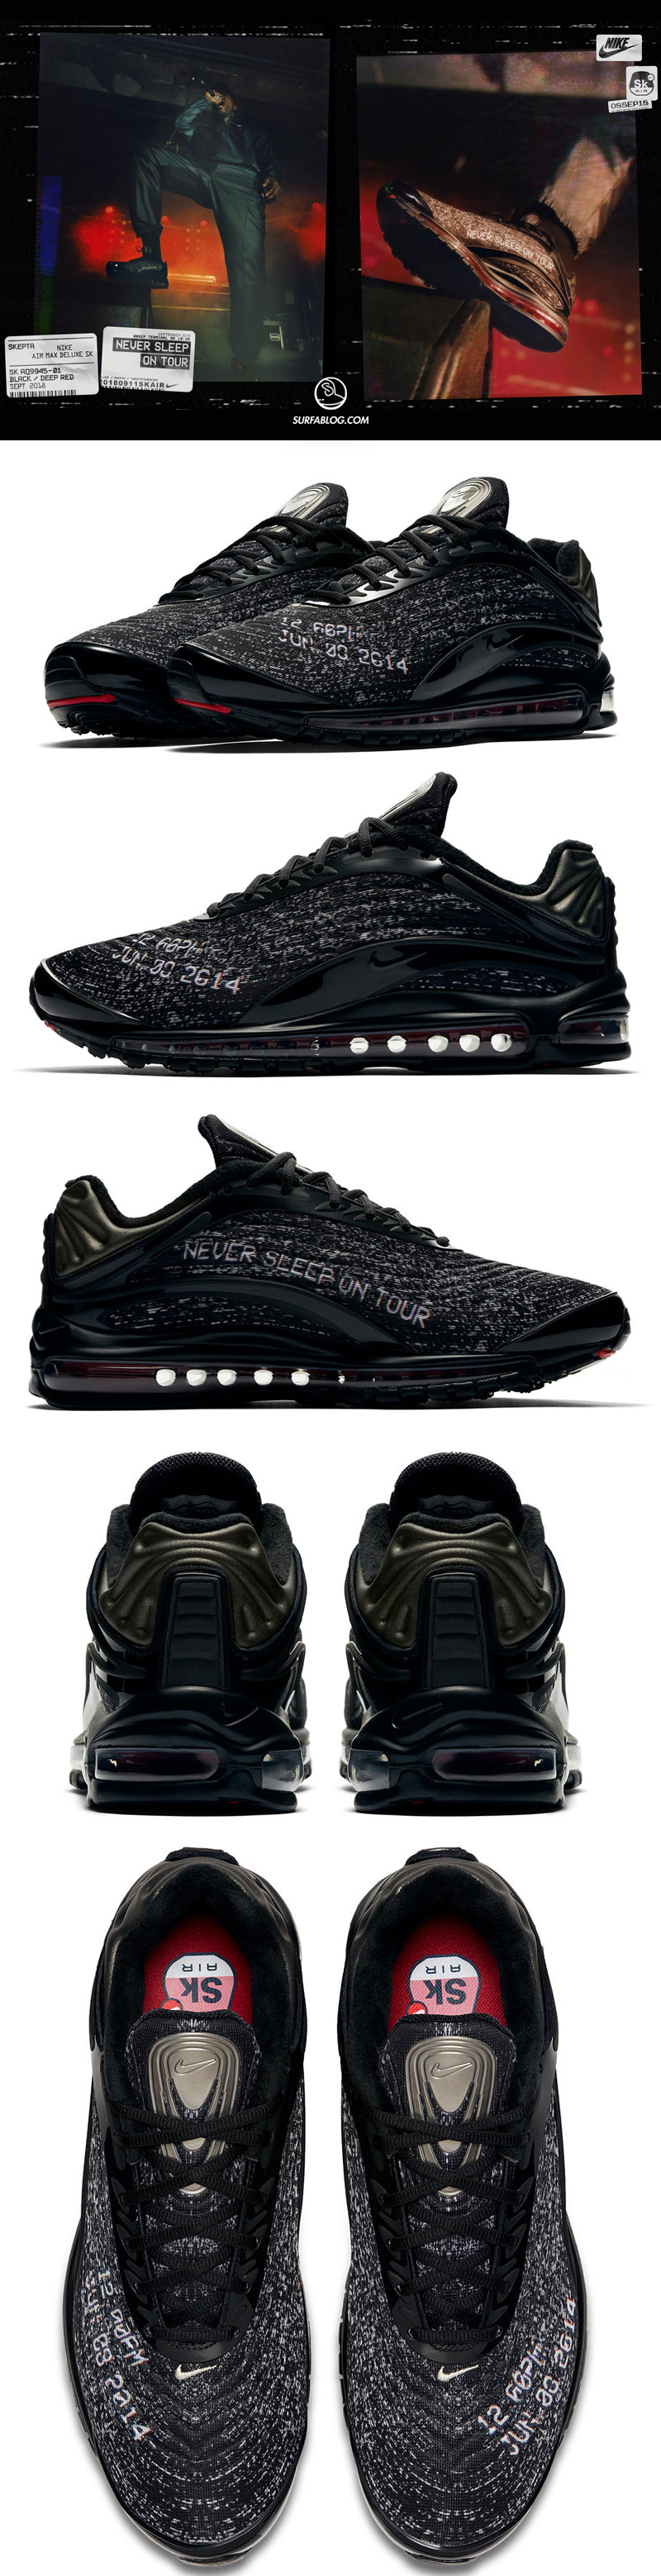 air max deluxe nere